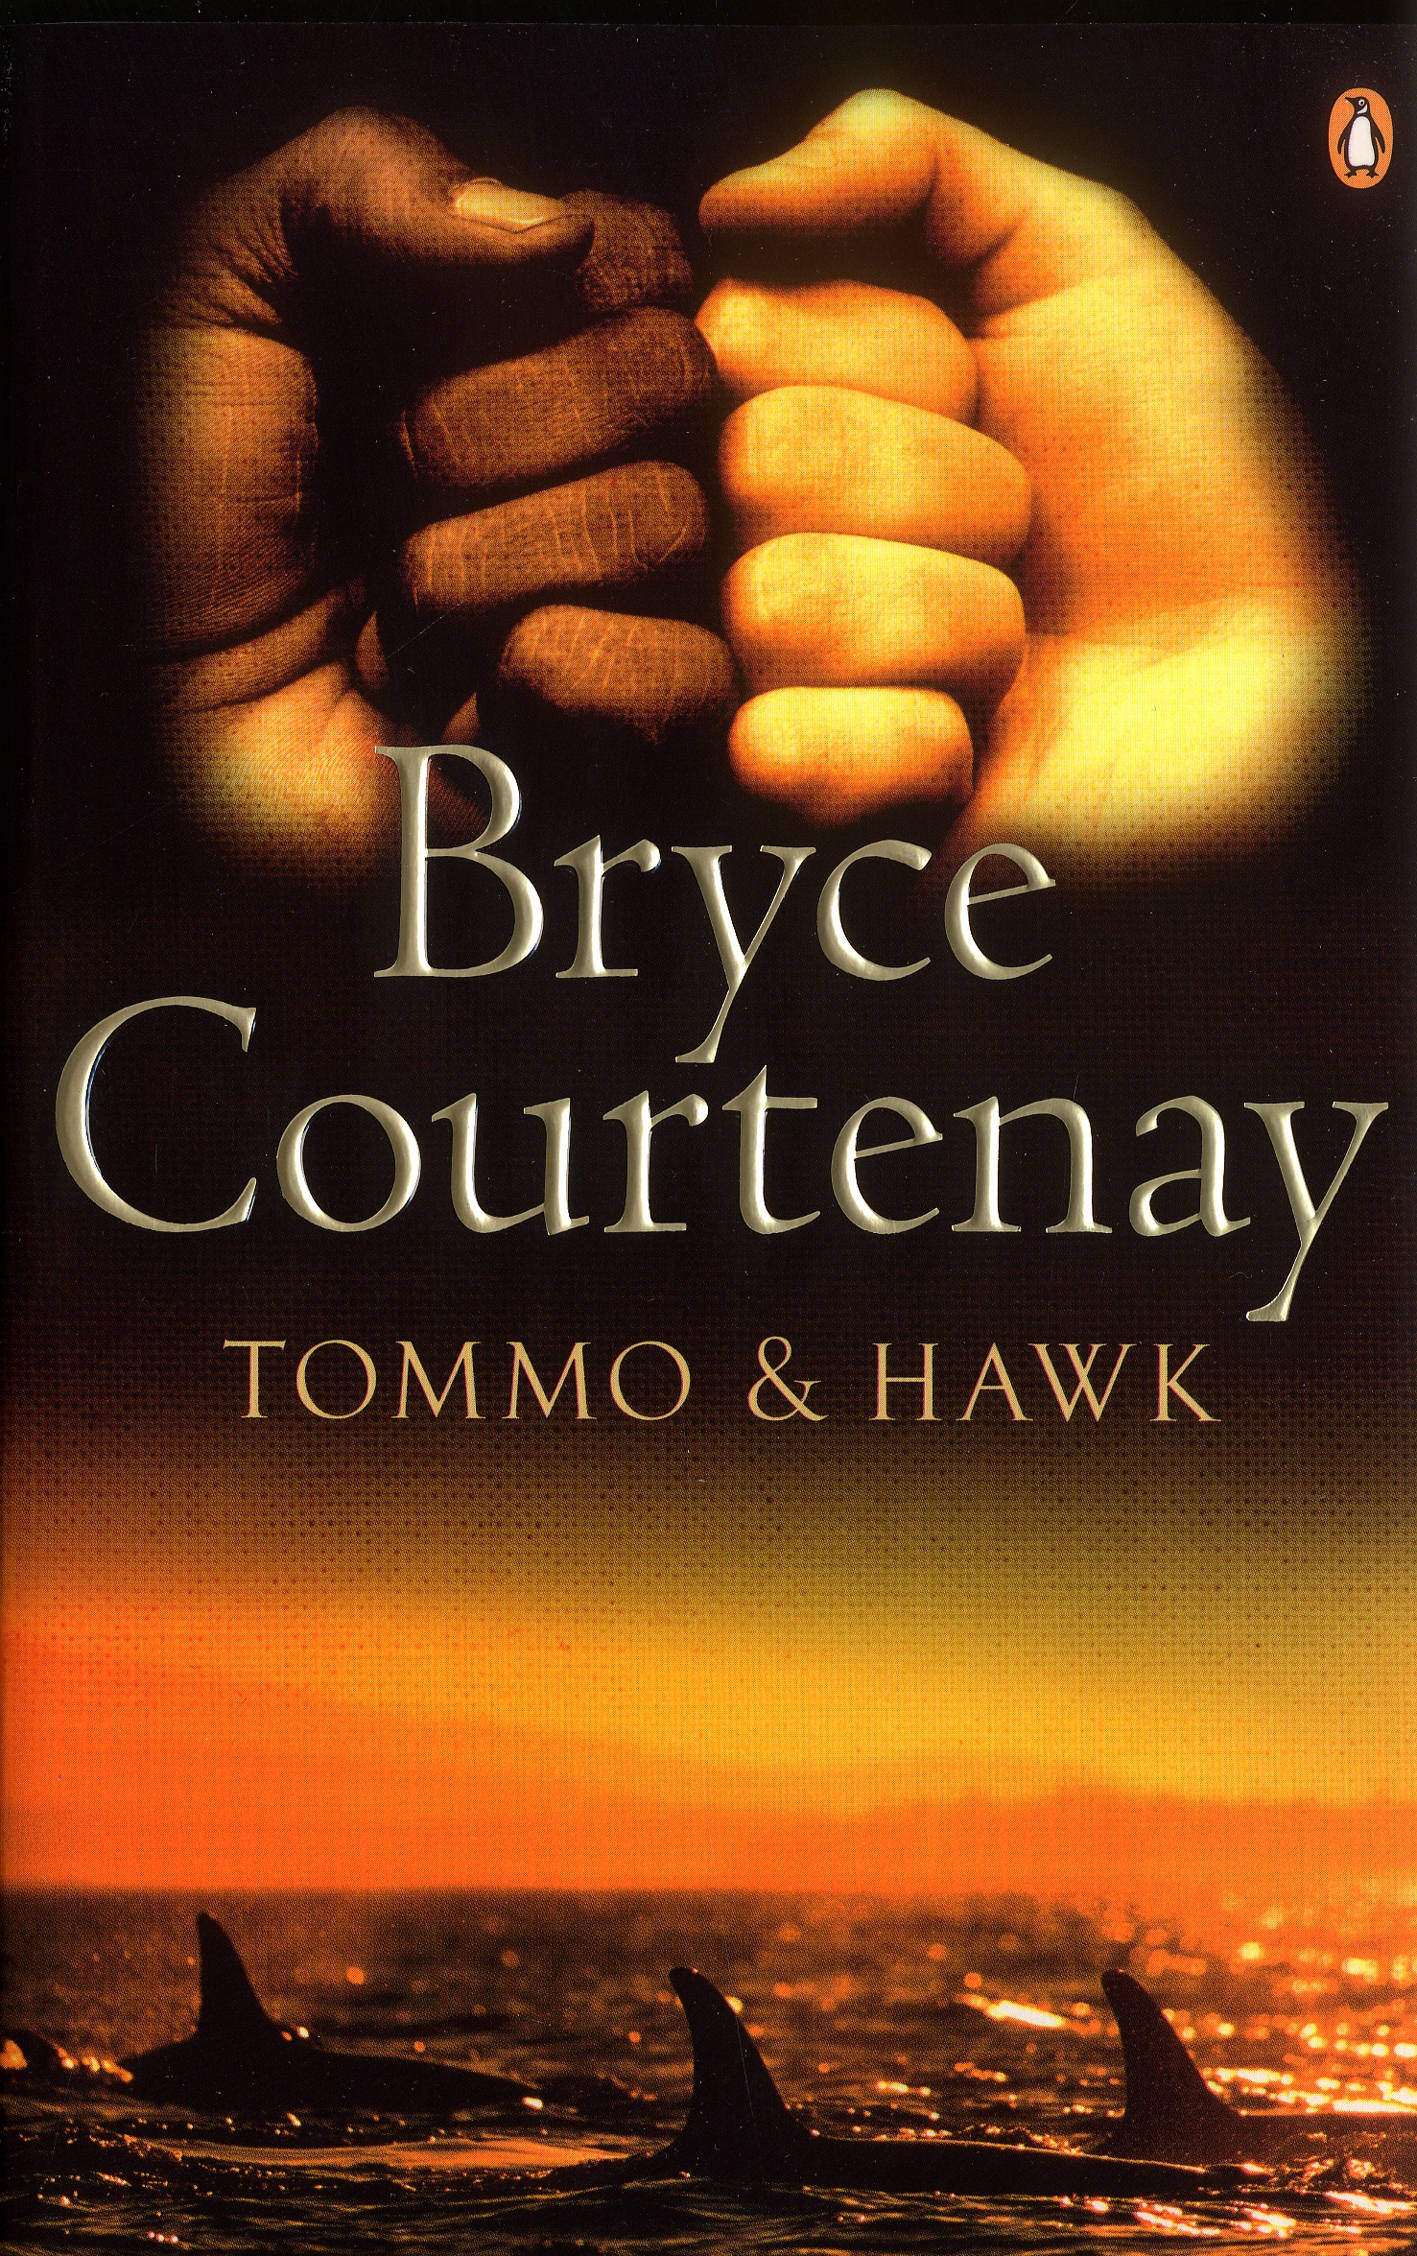 literary effects in the power of one bryce courtenay Find all available study guides and summaries for the power of one by bryce courtenay if there is a sparknotes, shmoop, or cliff notes guide, we will have it listed.